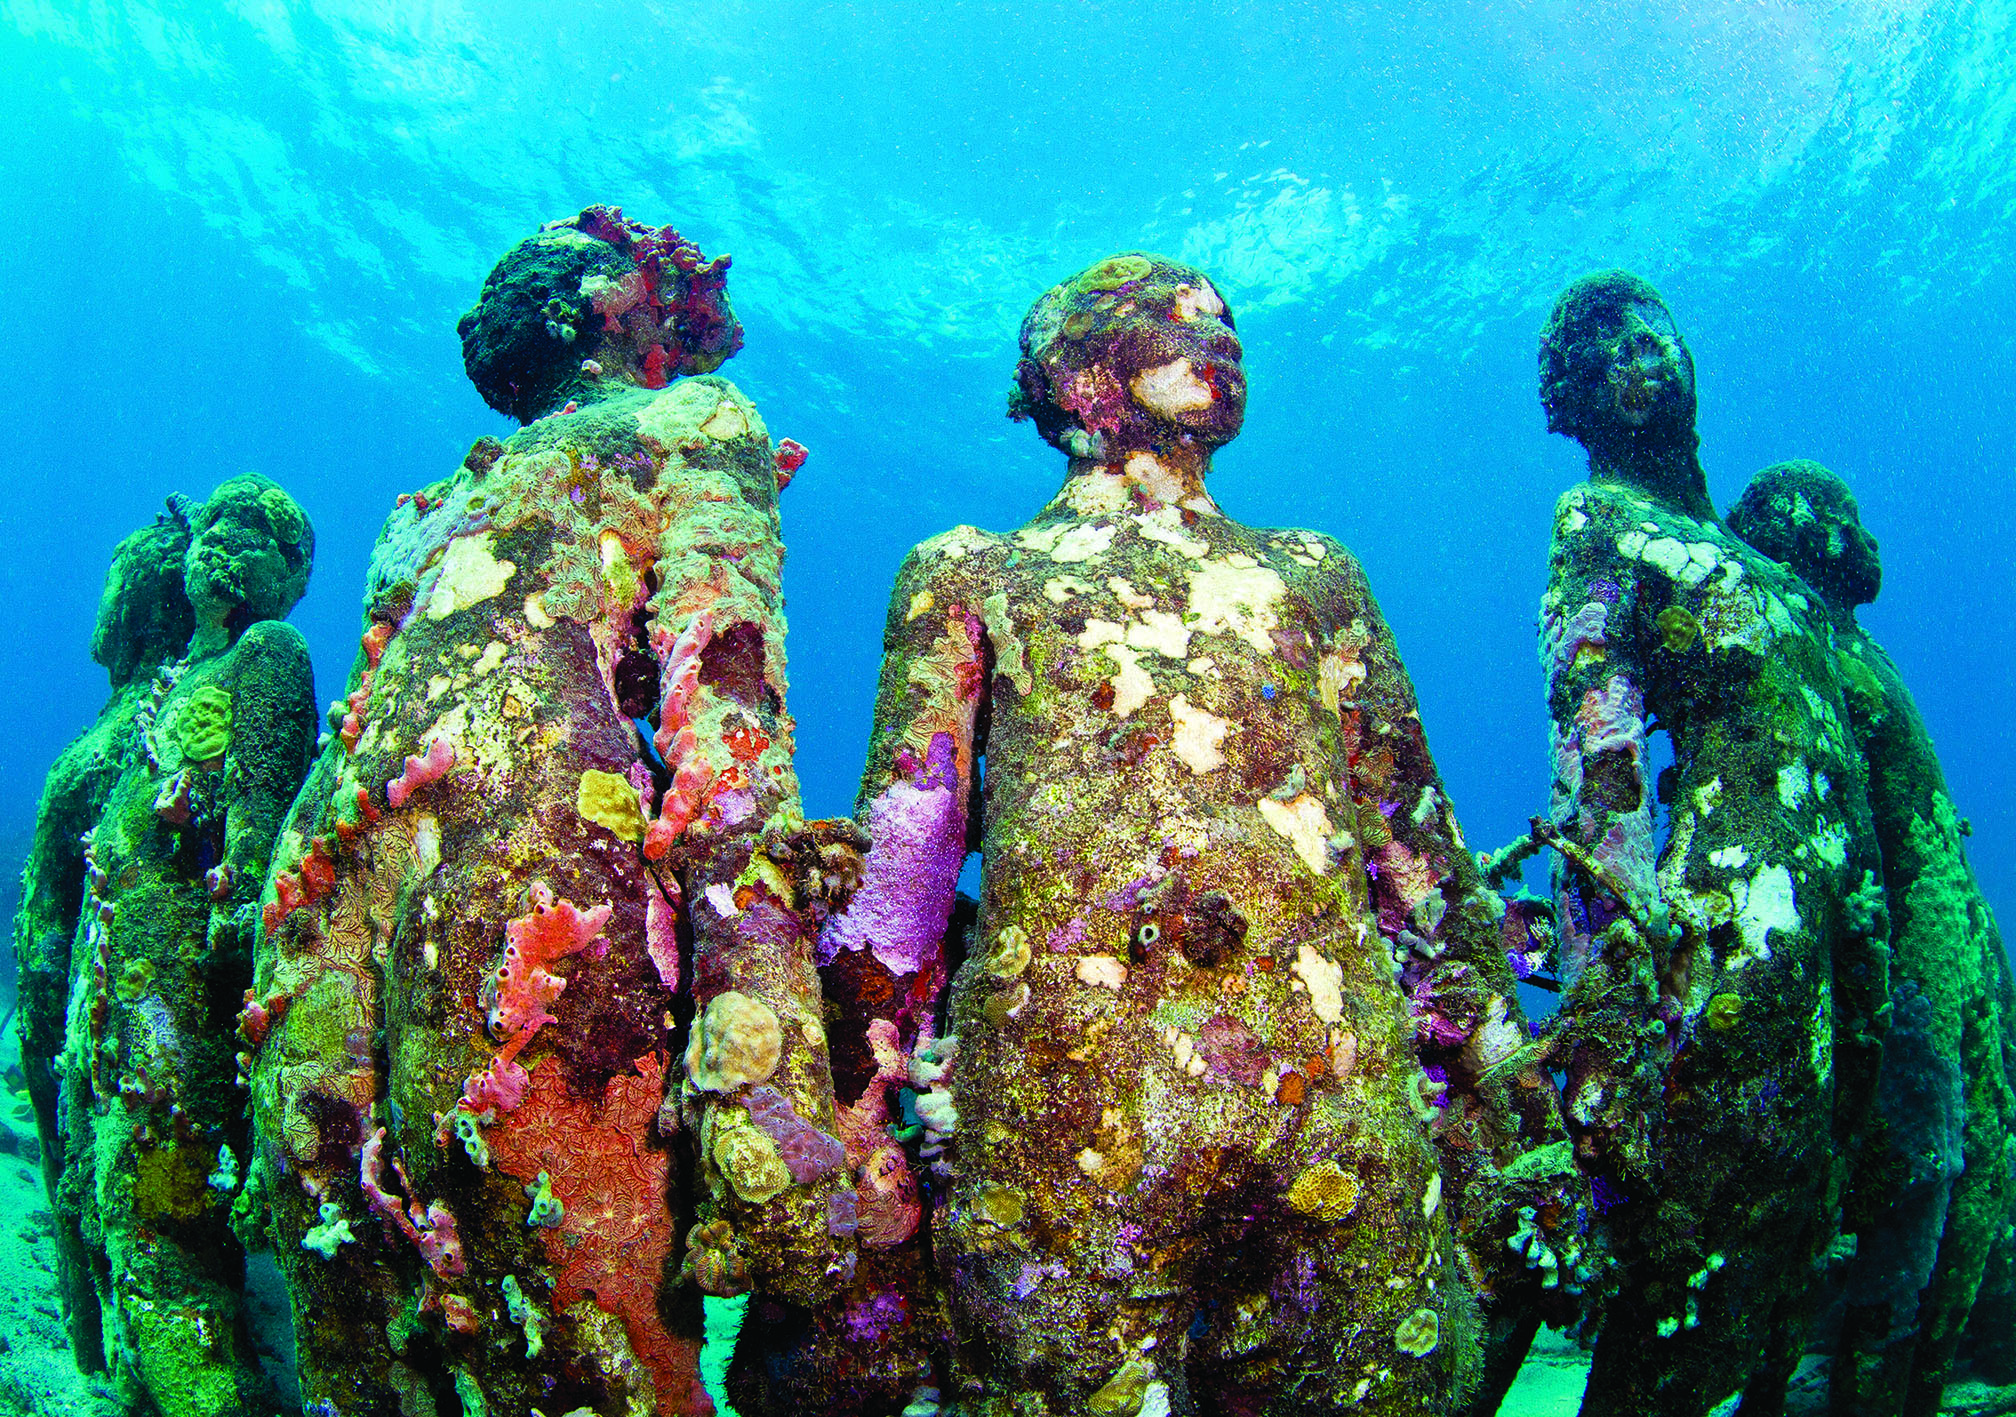 Funding push for underwater art museum